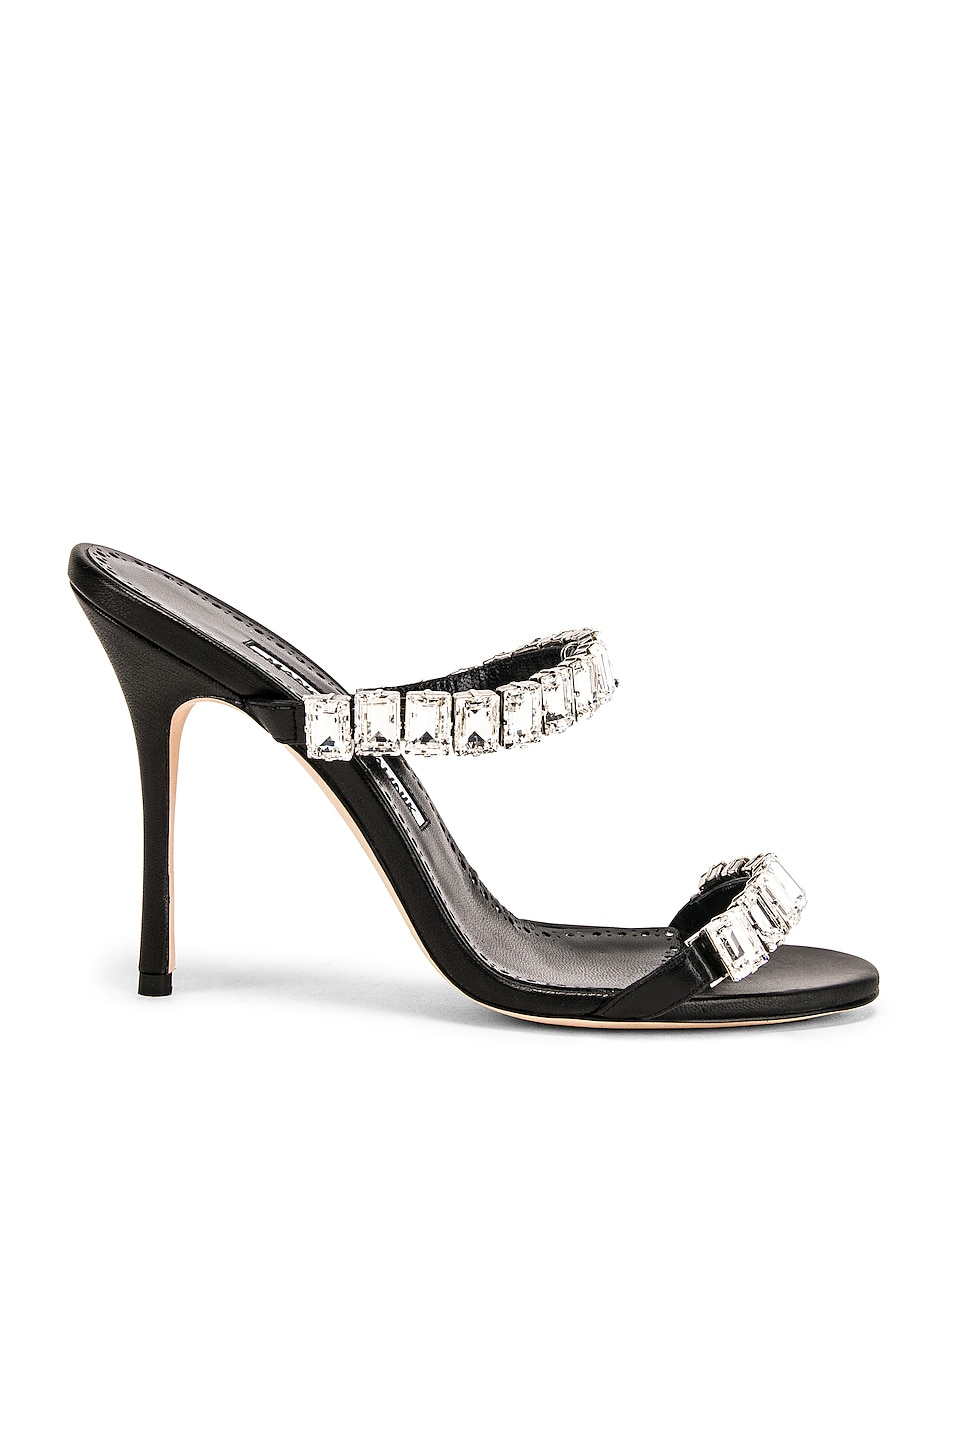 Image 1 of Manolo Blahnik Dallitre 105 Sandal in Nero Nappa